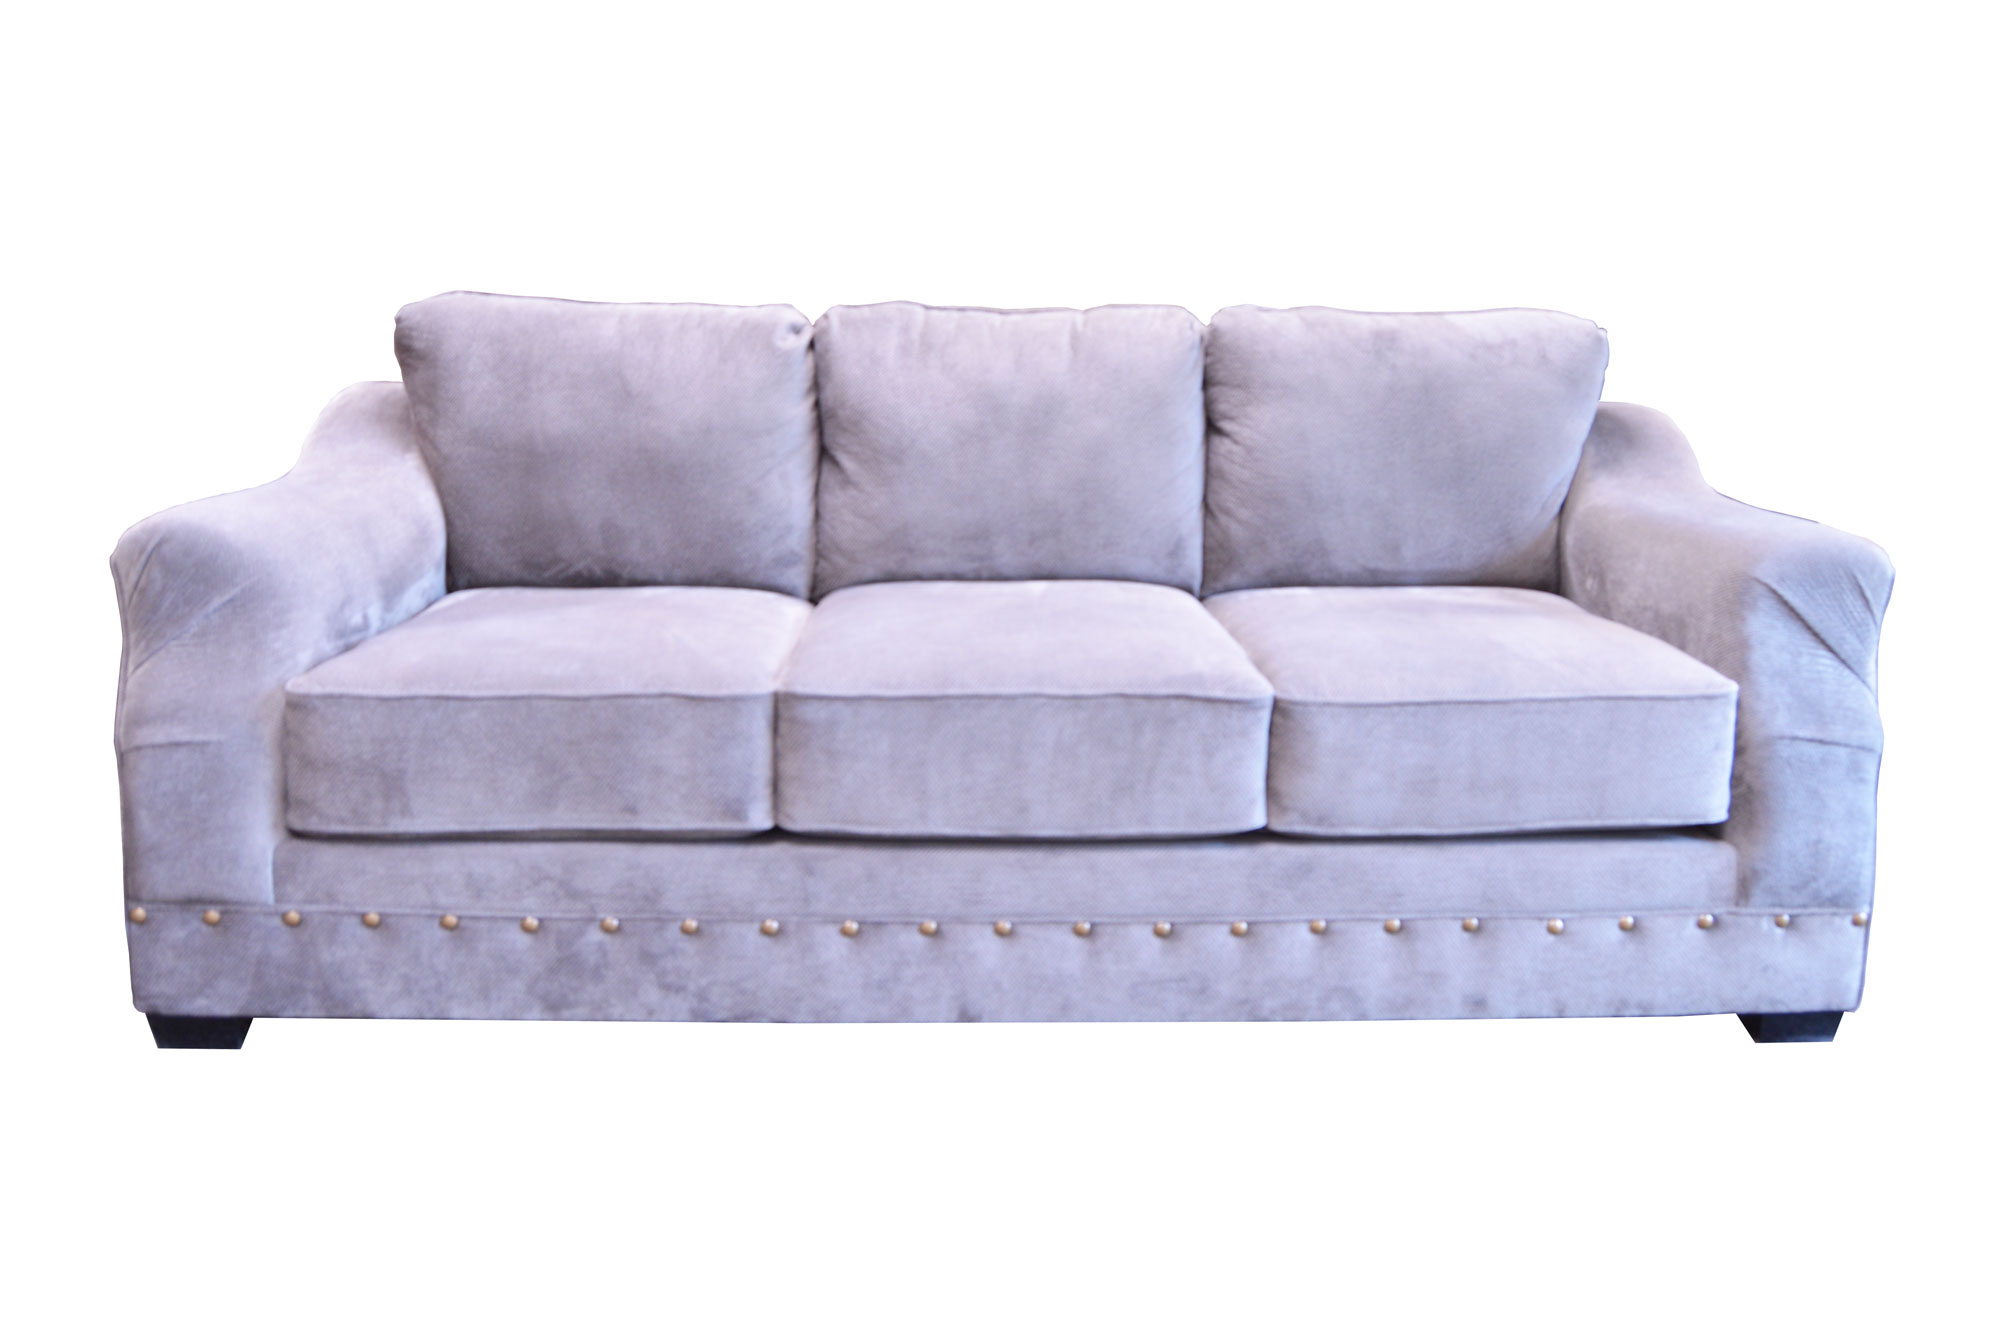 custom sofas for less concord sectional sofa size 4 | monterey